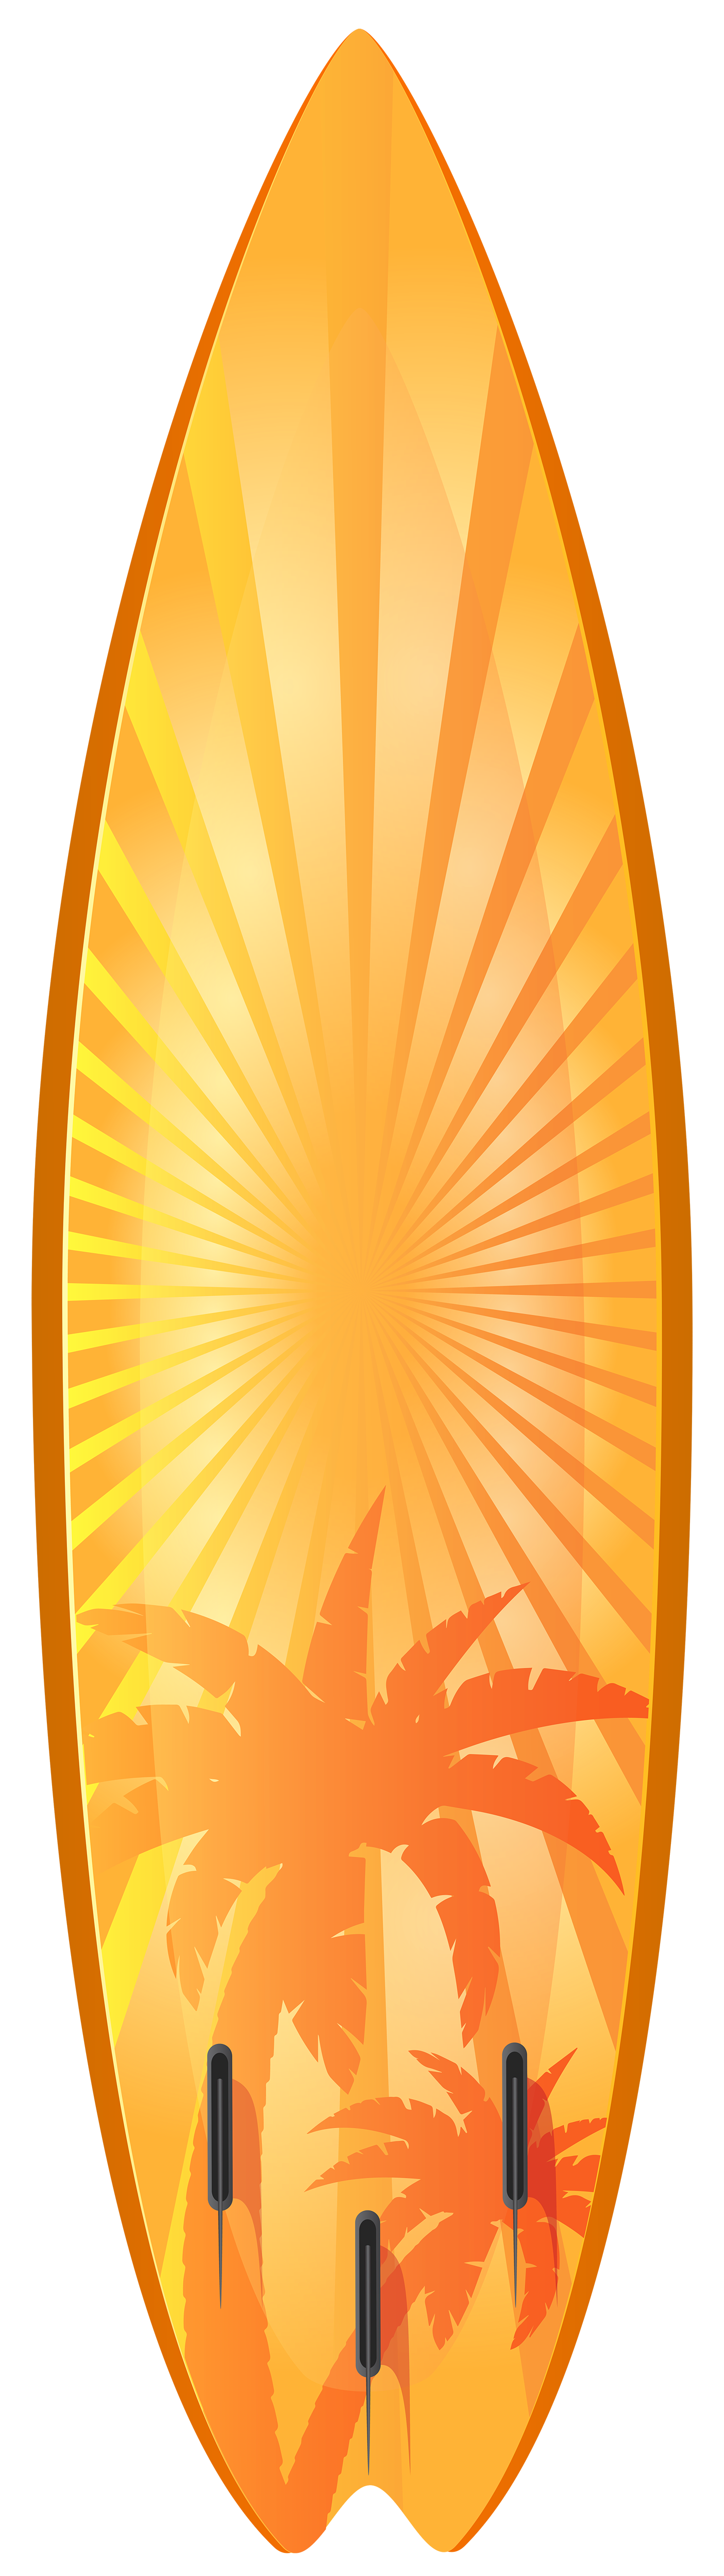 Palm tree and surfboard clipart clip royalty free Surfboard clipart standing palm tree - ClipartFest clip royalty free